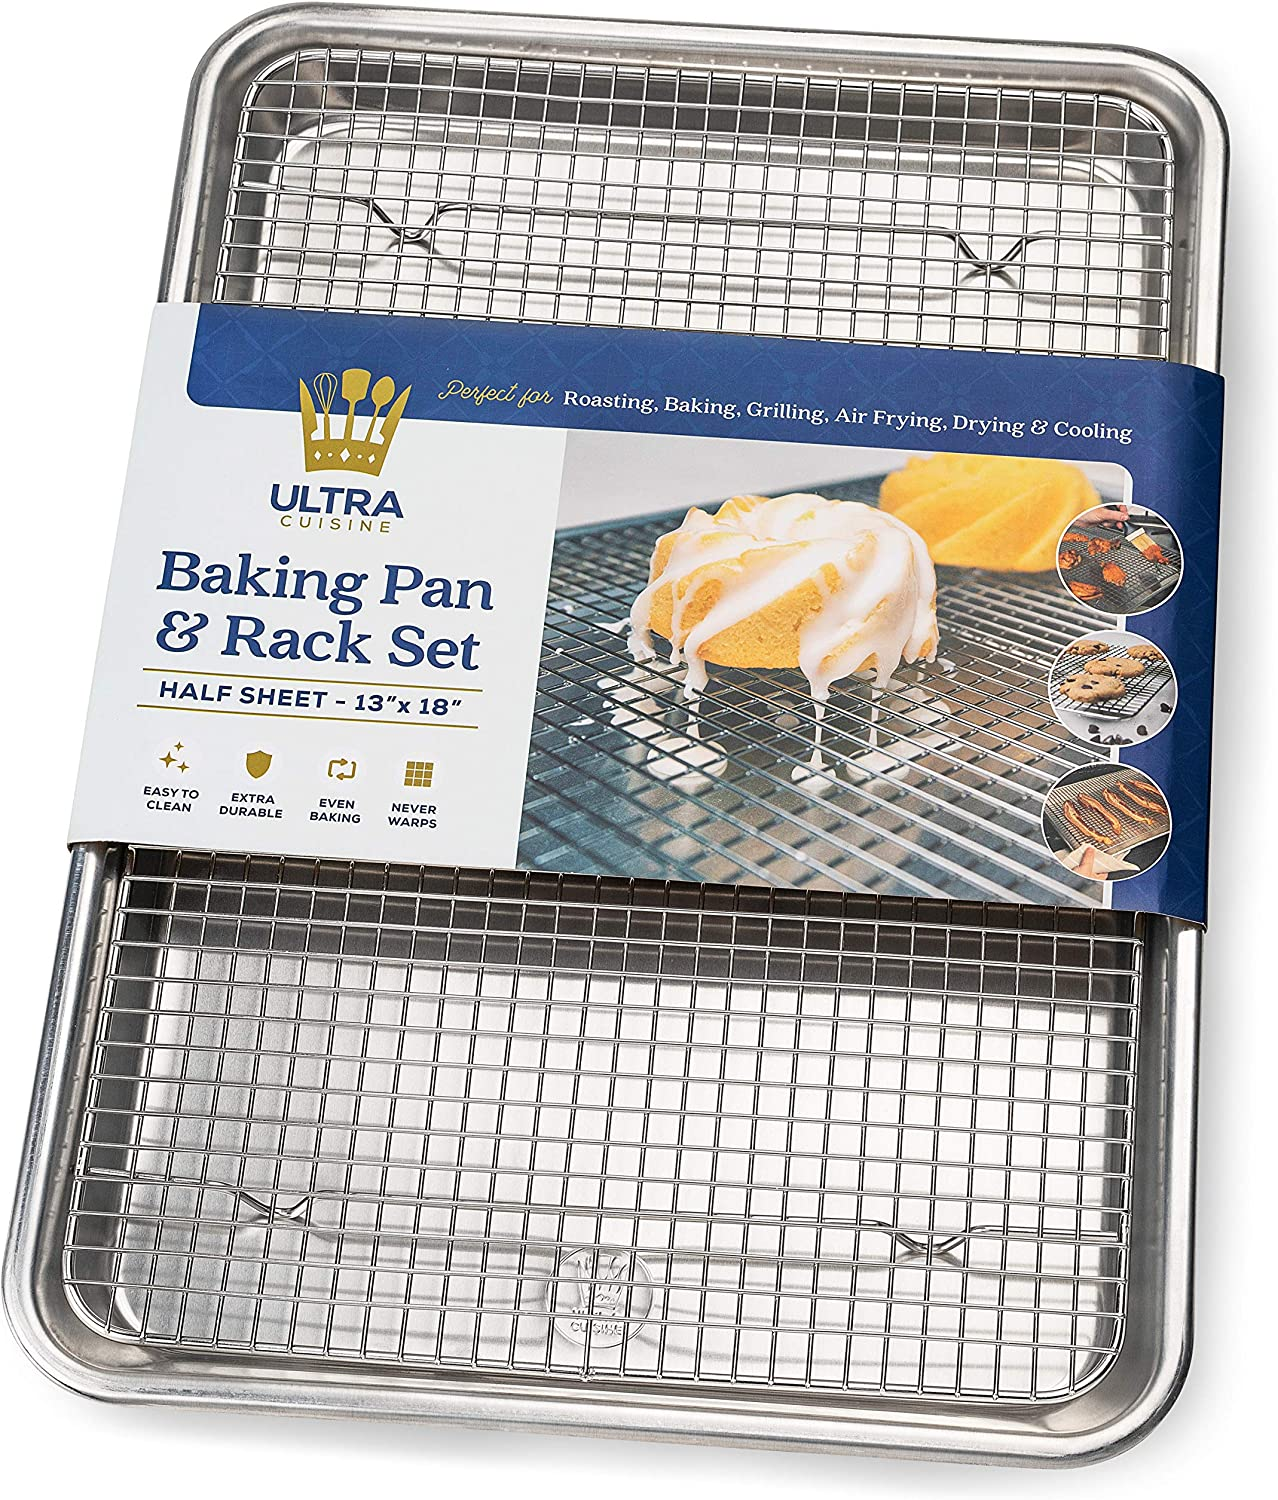 Baking Pan with Cooling Rack Set - Half Sheet Pan Size - Includes a Professional Aluminum Baking Sheet and a Stainless Steel Baking Rack for Oven - Durable, Easy to Clean, Commercial Quality